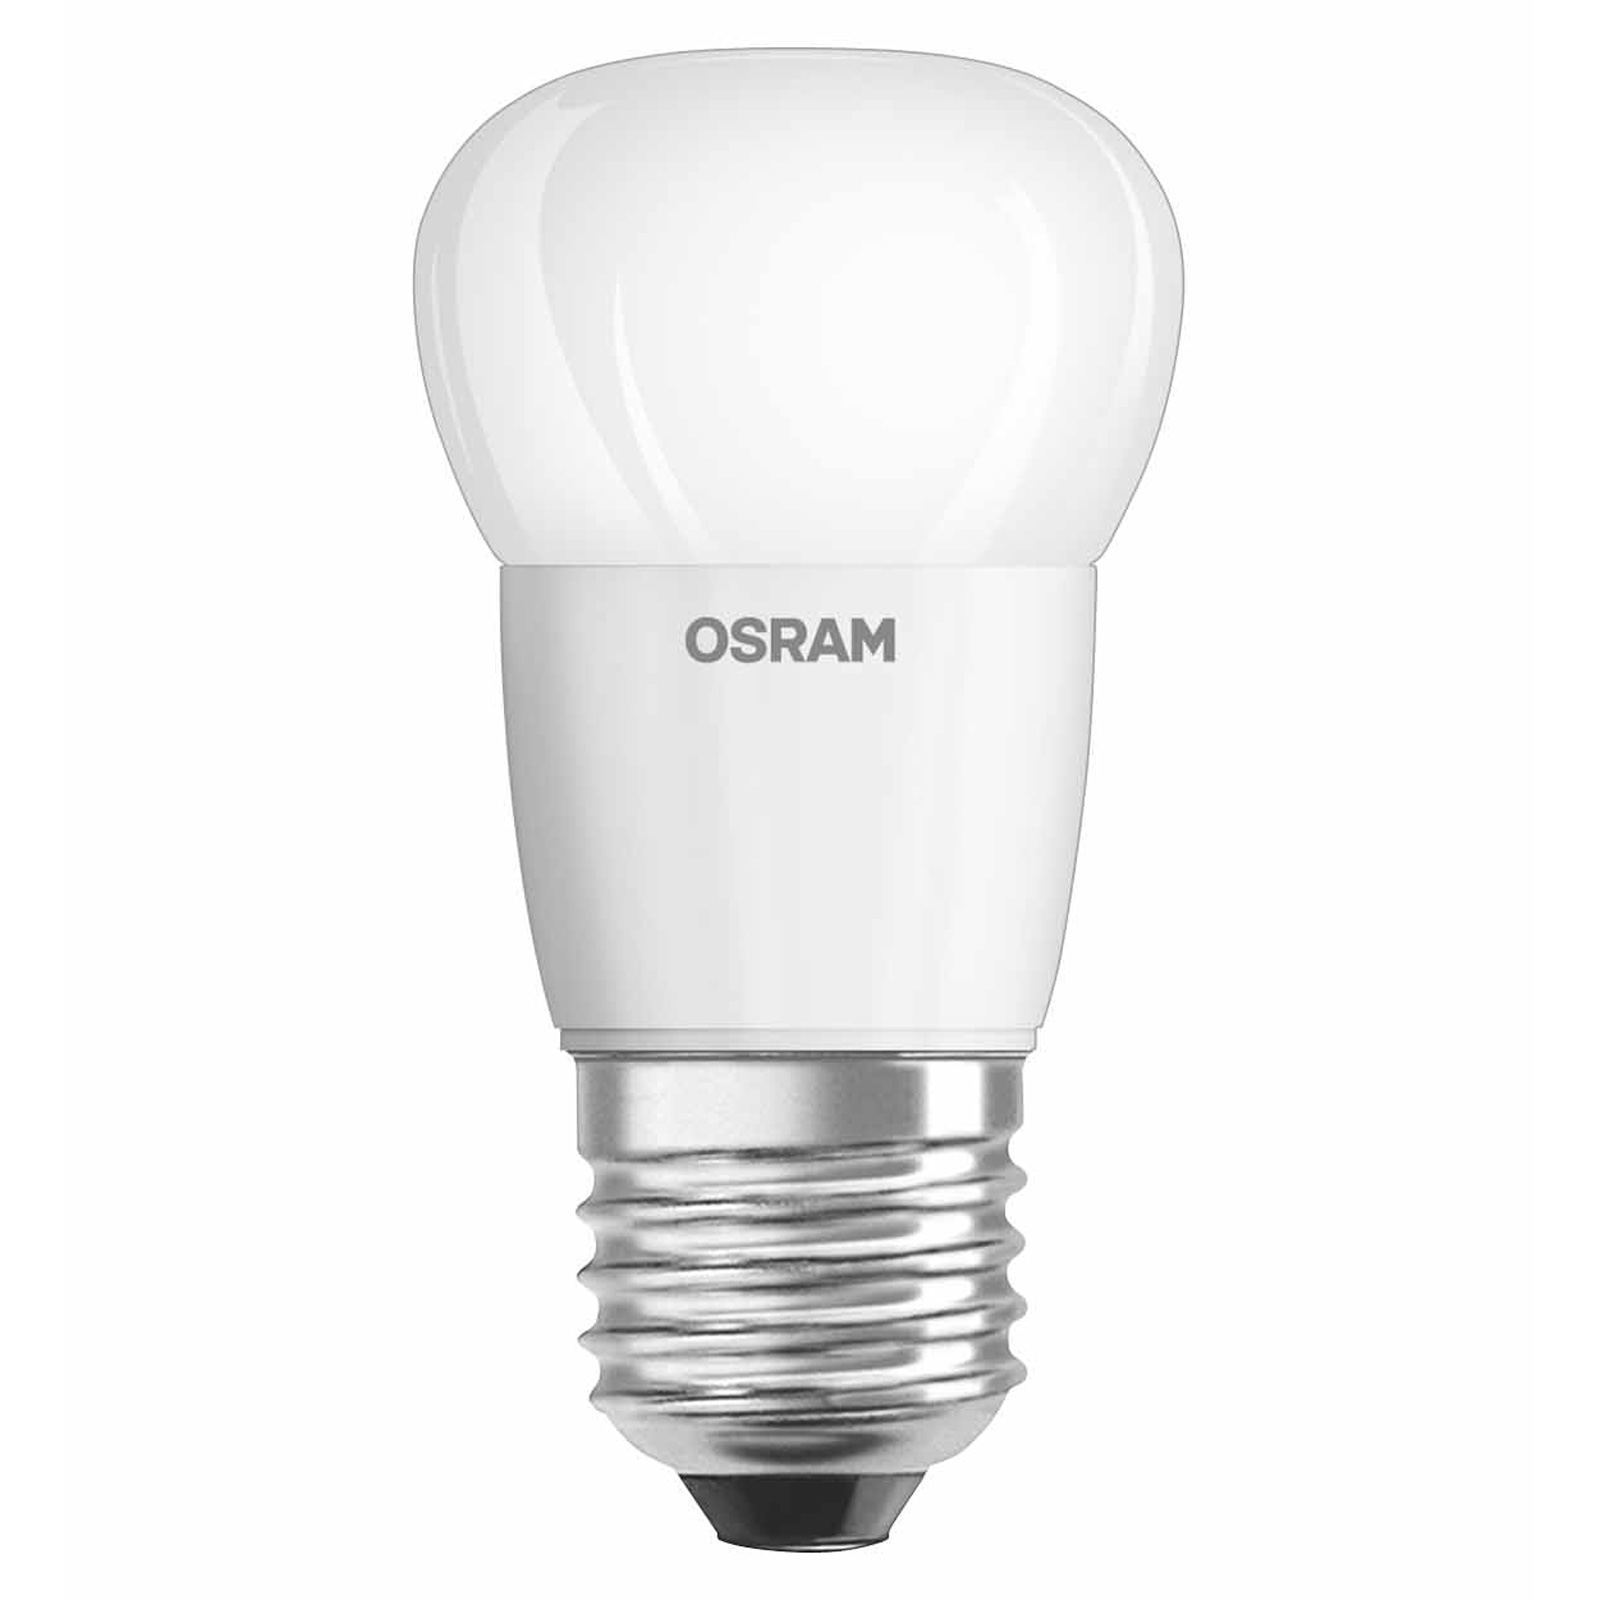 osram led star classic p 40 e27 5 8 watt ersatz f r 40 watt 470 lumen warmwei ebay. Black Bedroom Furniture Sets. Home Design Ideas